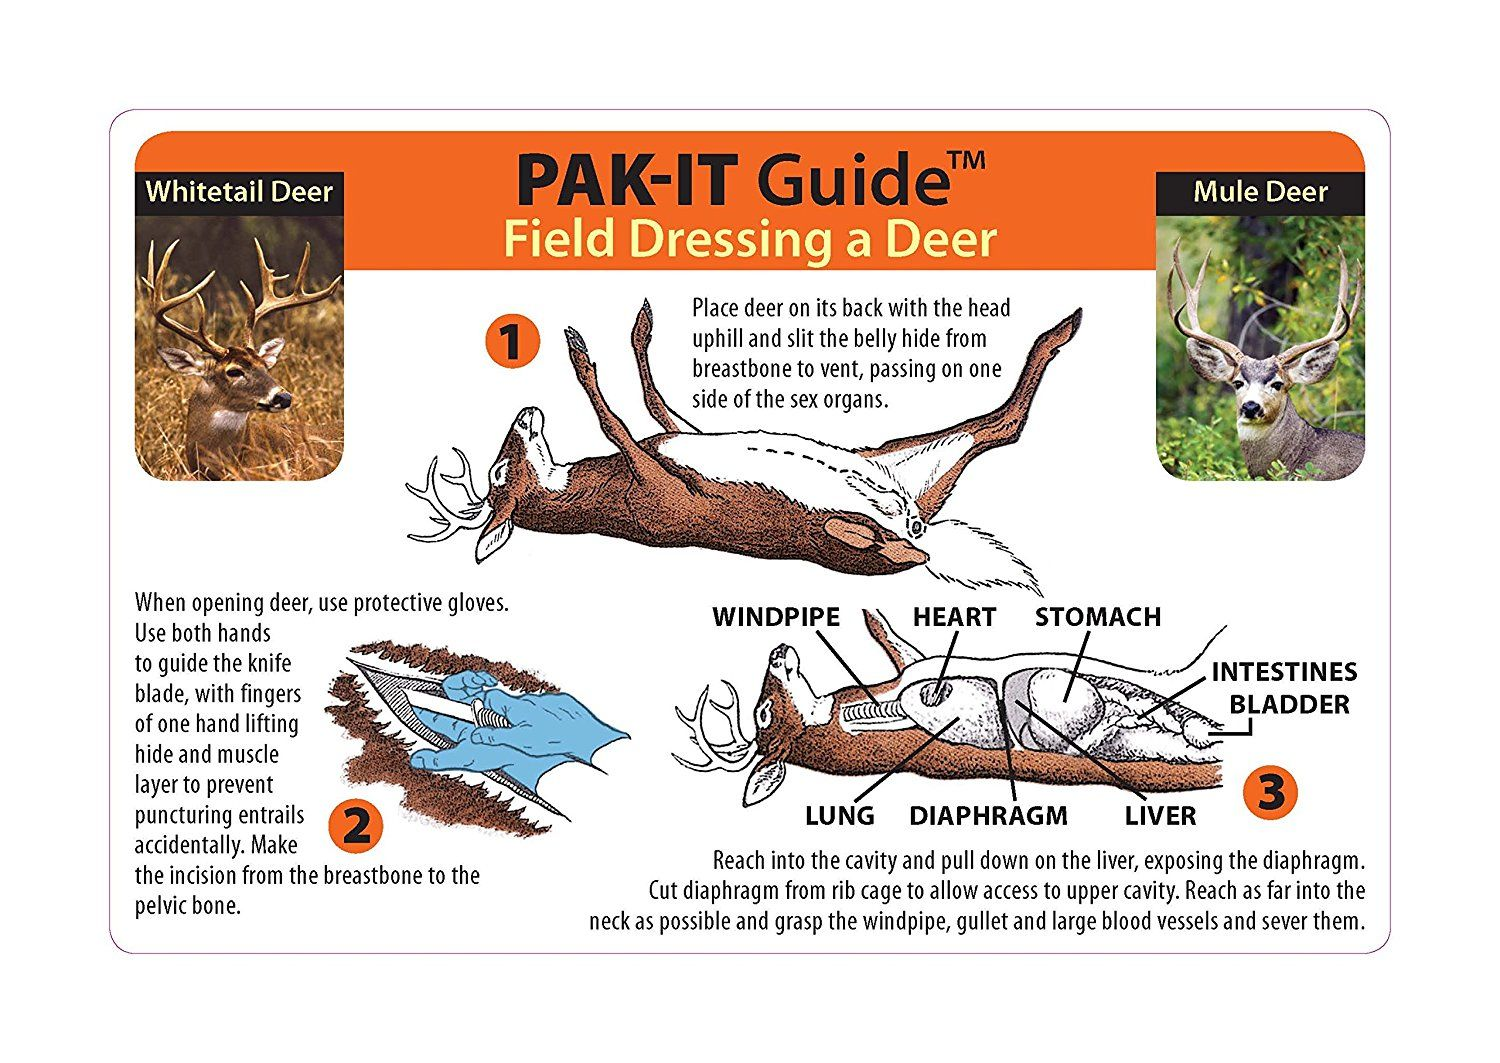 Pakit guide to field dressing a deer